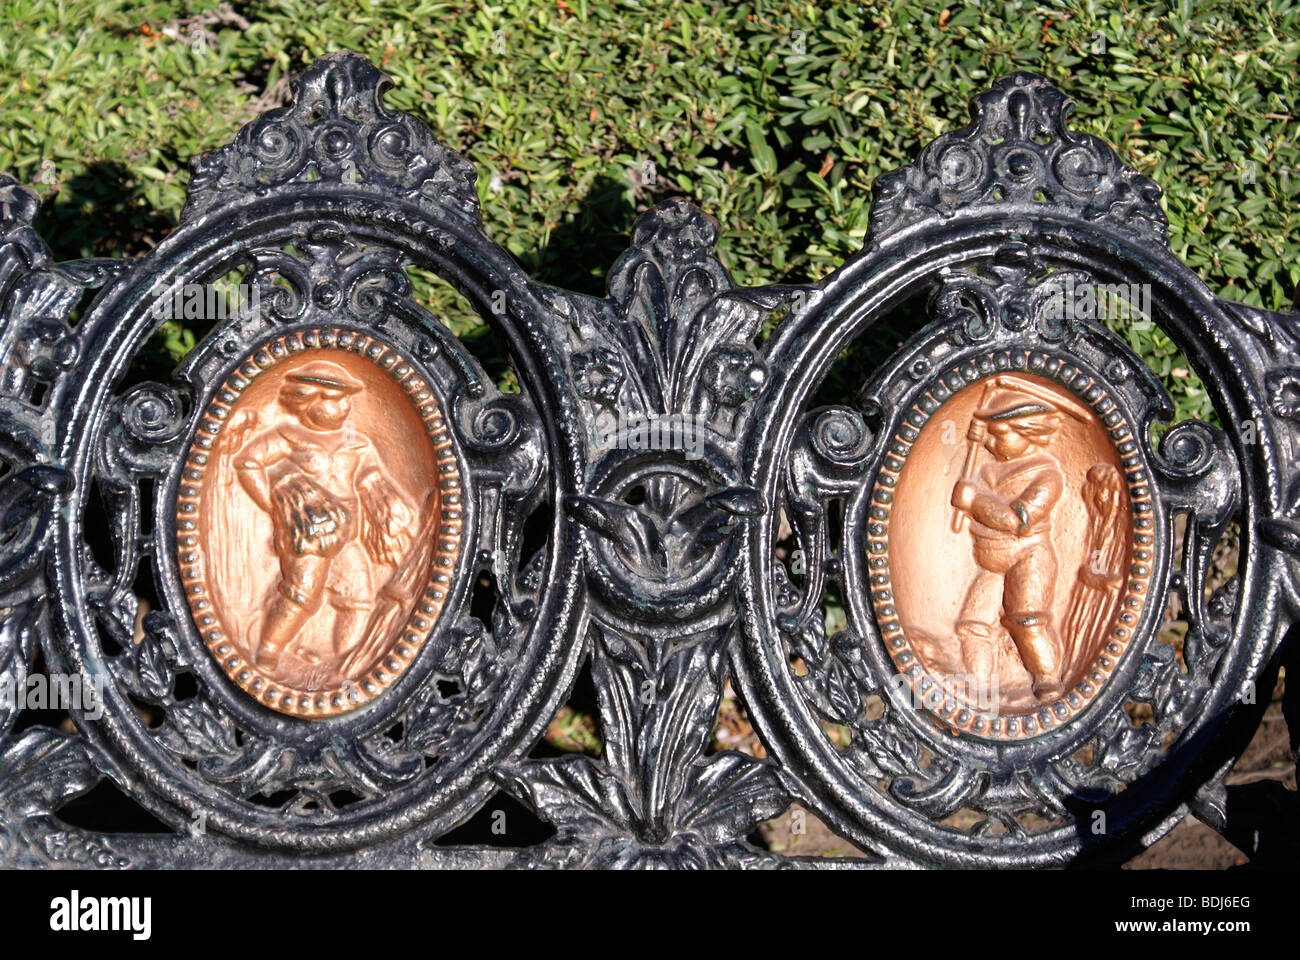 Detail of ornate wrought iron park bench in the Plaza de Armas, San Luis Potosi, Mexico Stock Photo